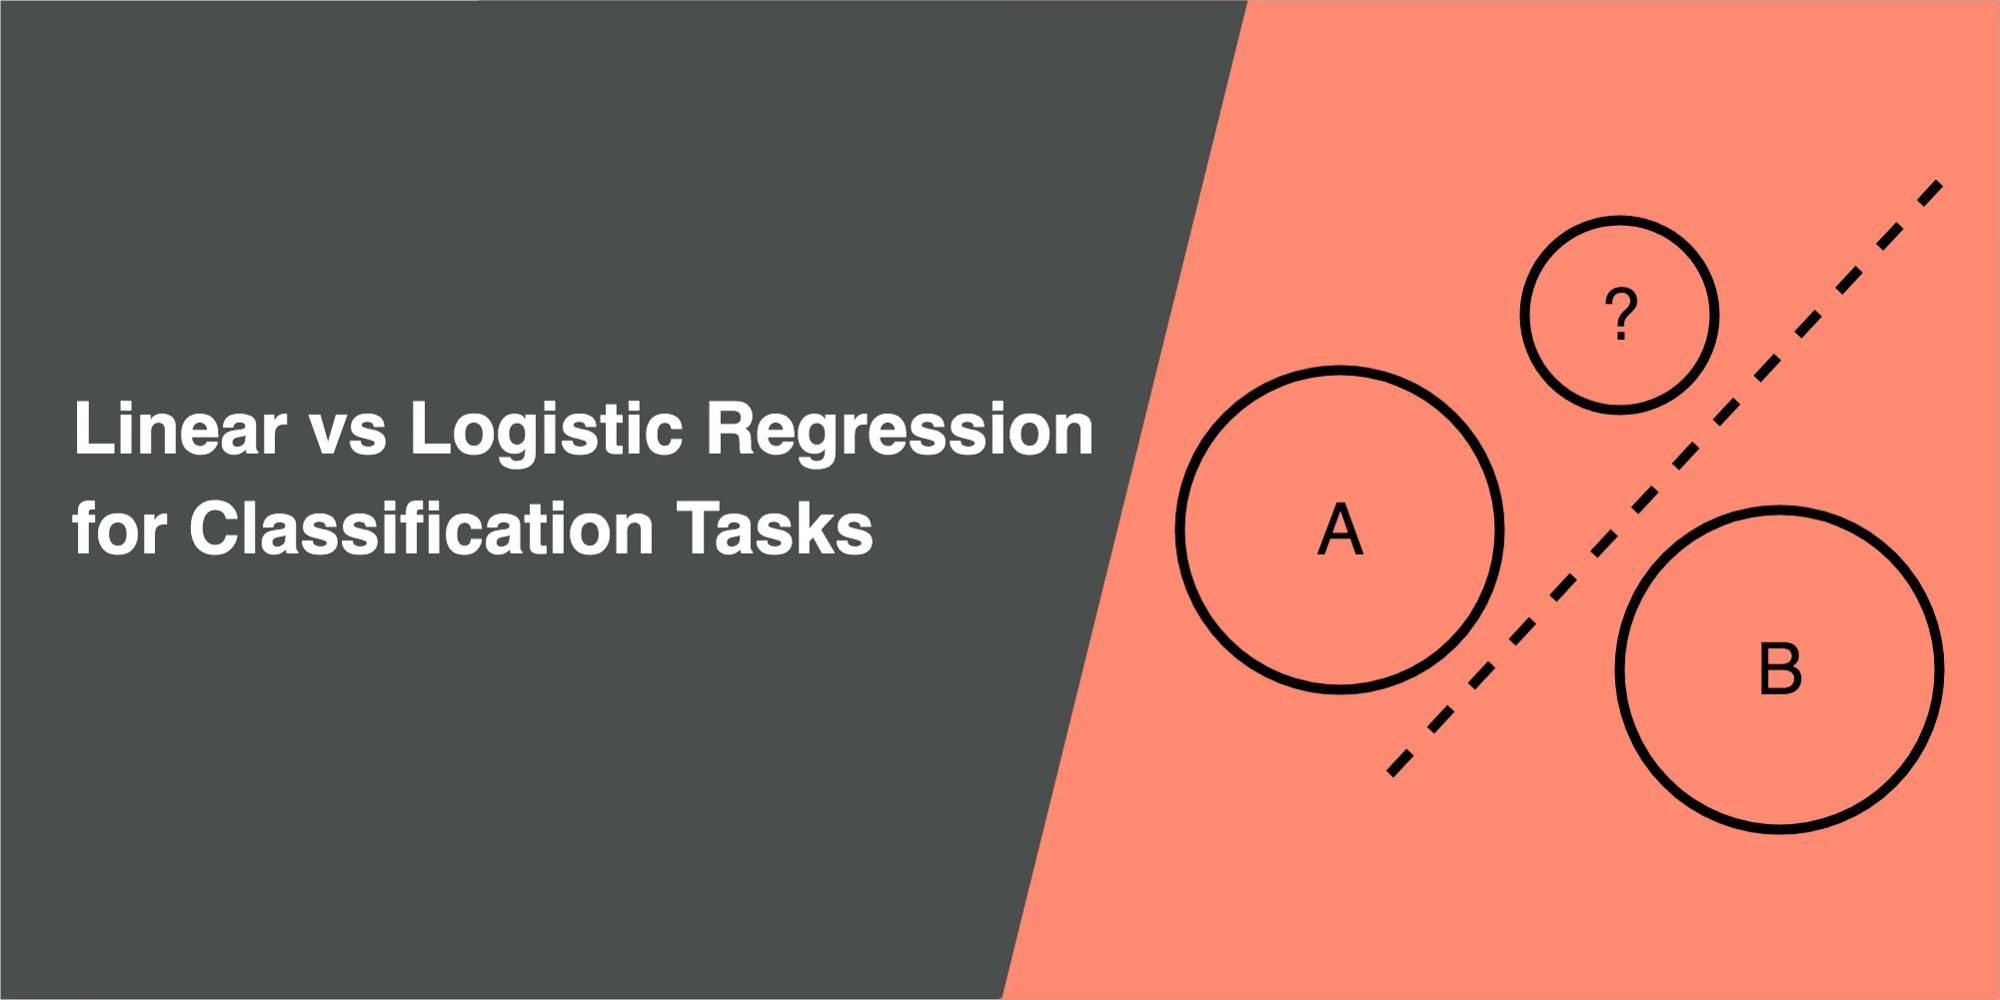 Linear Regression vs Logistic Regression for Classification Tasks